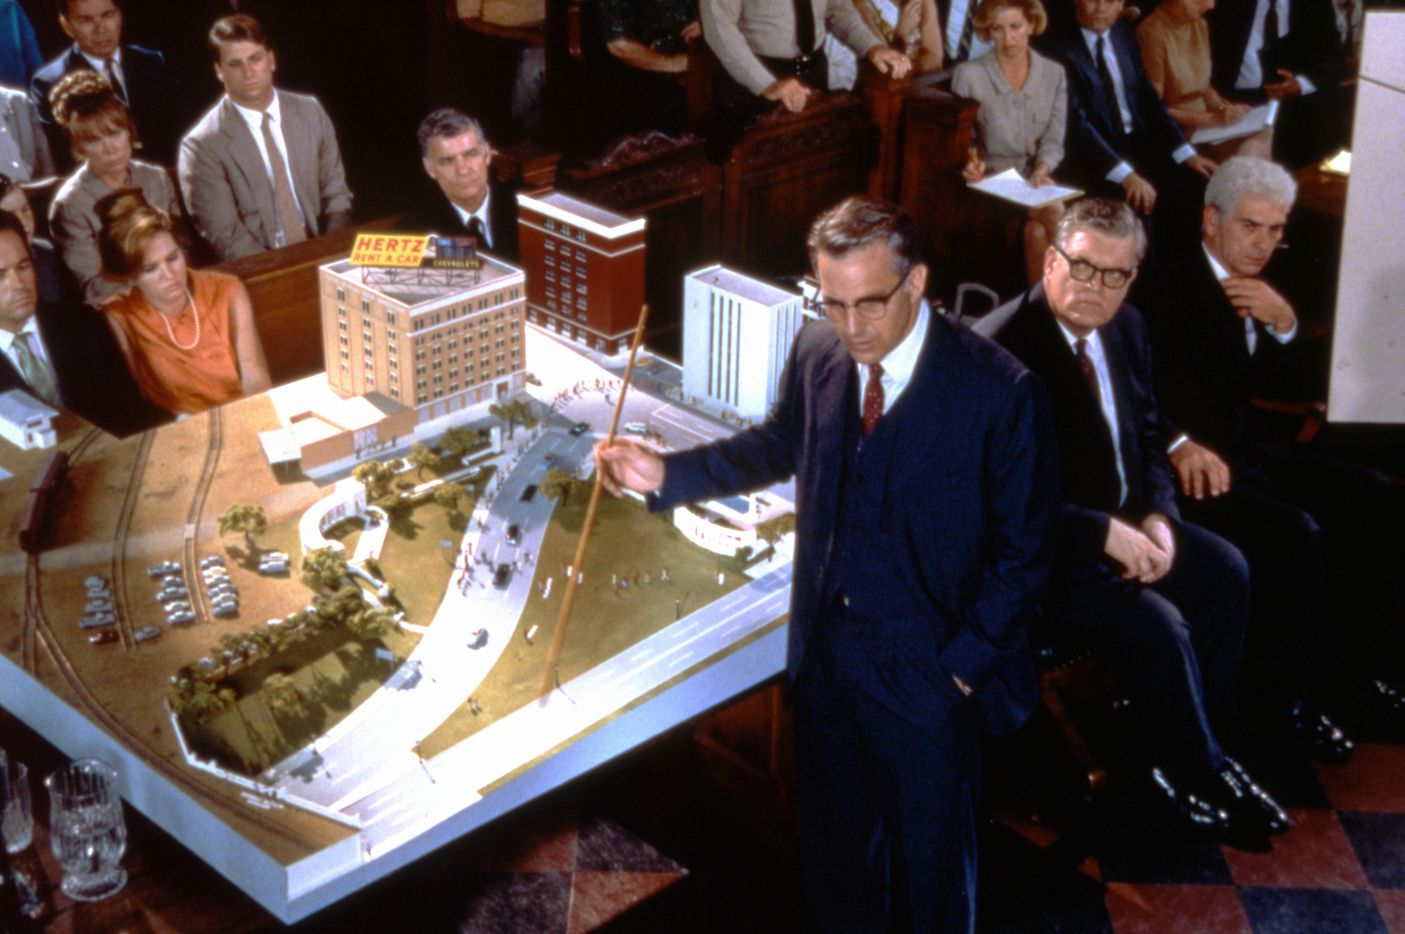 """This image from Oliver Stone's 1991 movie JFK shows Kevin Costner as New Orleans District Attorney Jim Garrison demonstrating the """"magic bullet"""" theory. Critics say Stone's film did more than anything to shape the public's perception of President John F. Kennedy's assassination. """"He made this kind of paranoid conspiracy theory respectable,"""" says New York writer Arthur Goldwag, author of Cults, Conspiracies, and Secret Societies."""